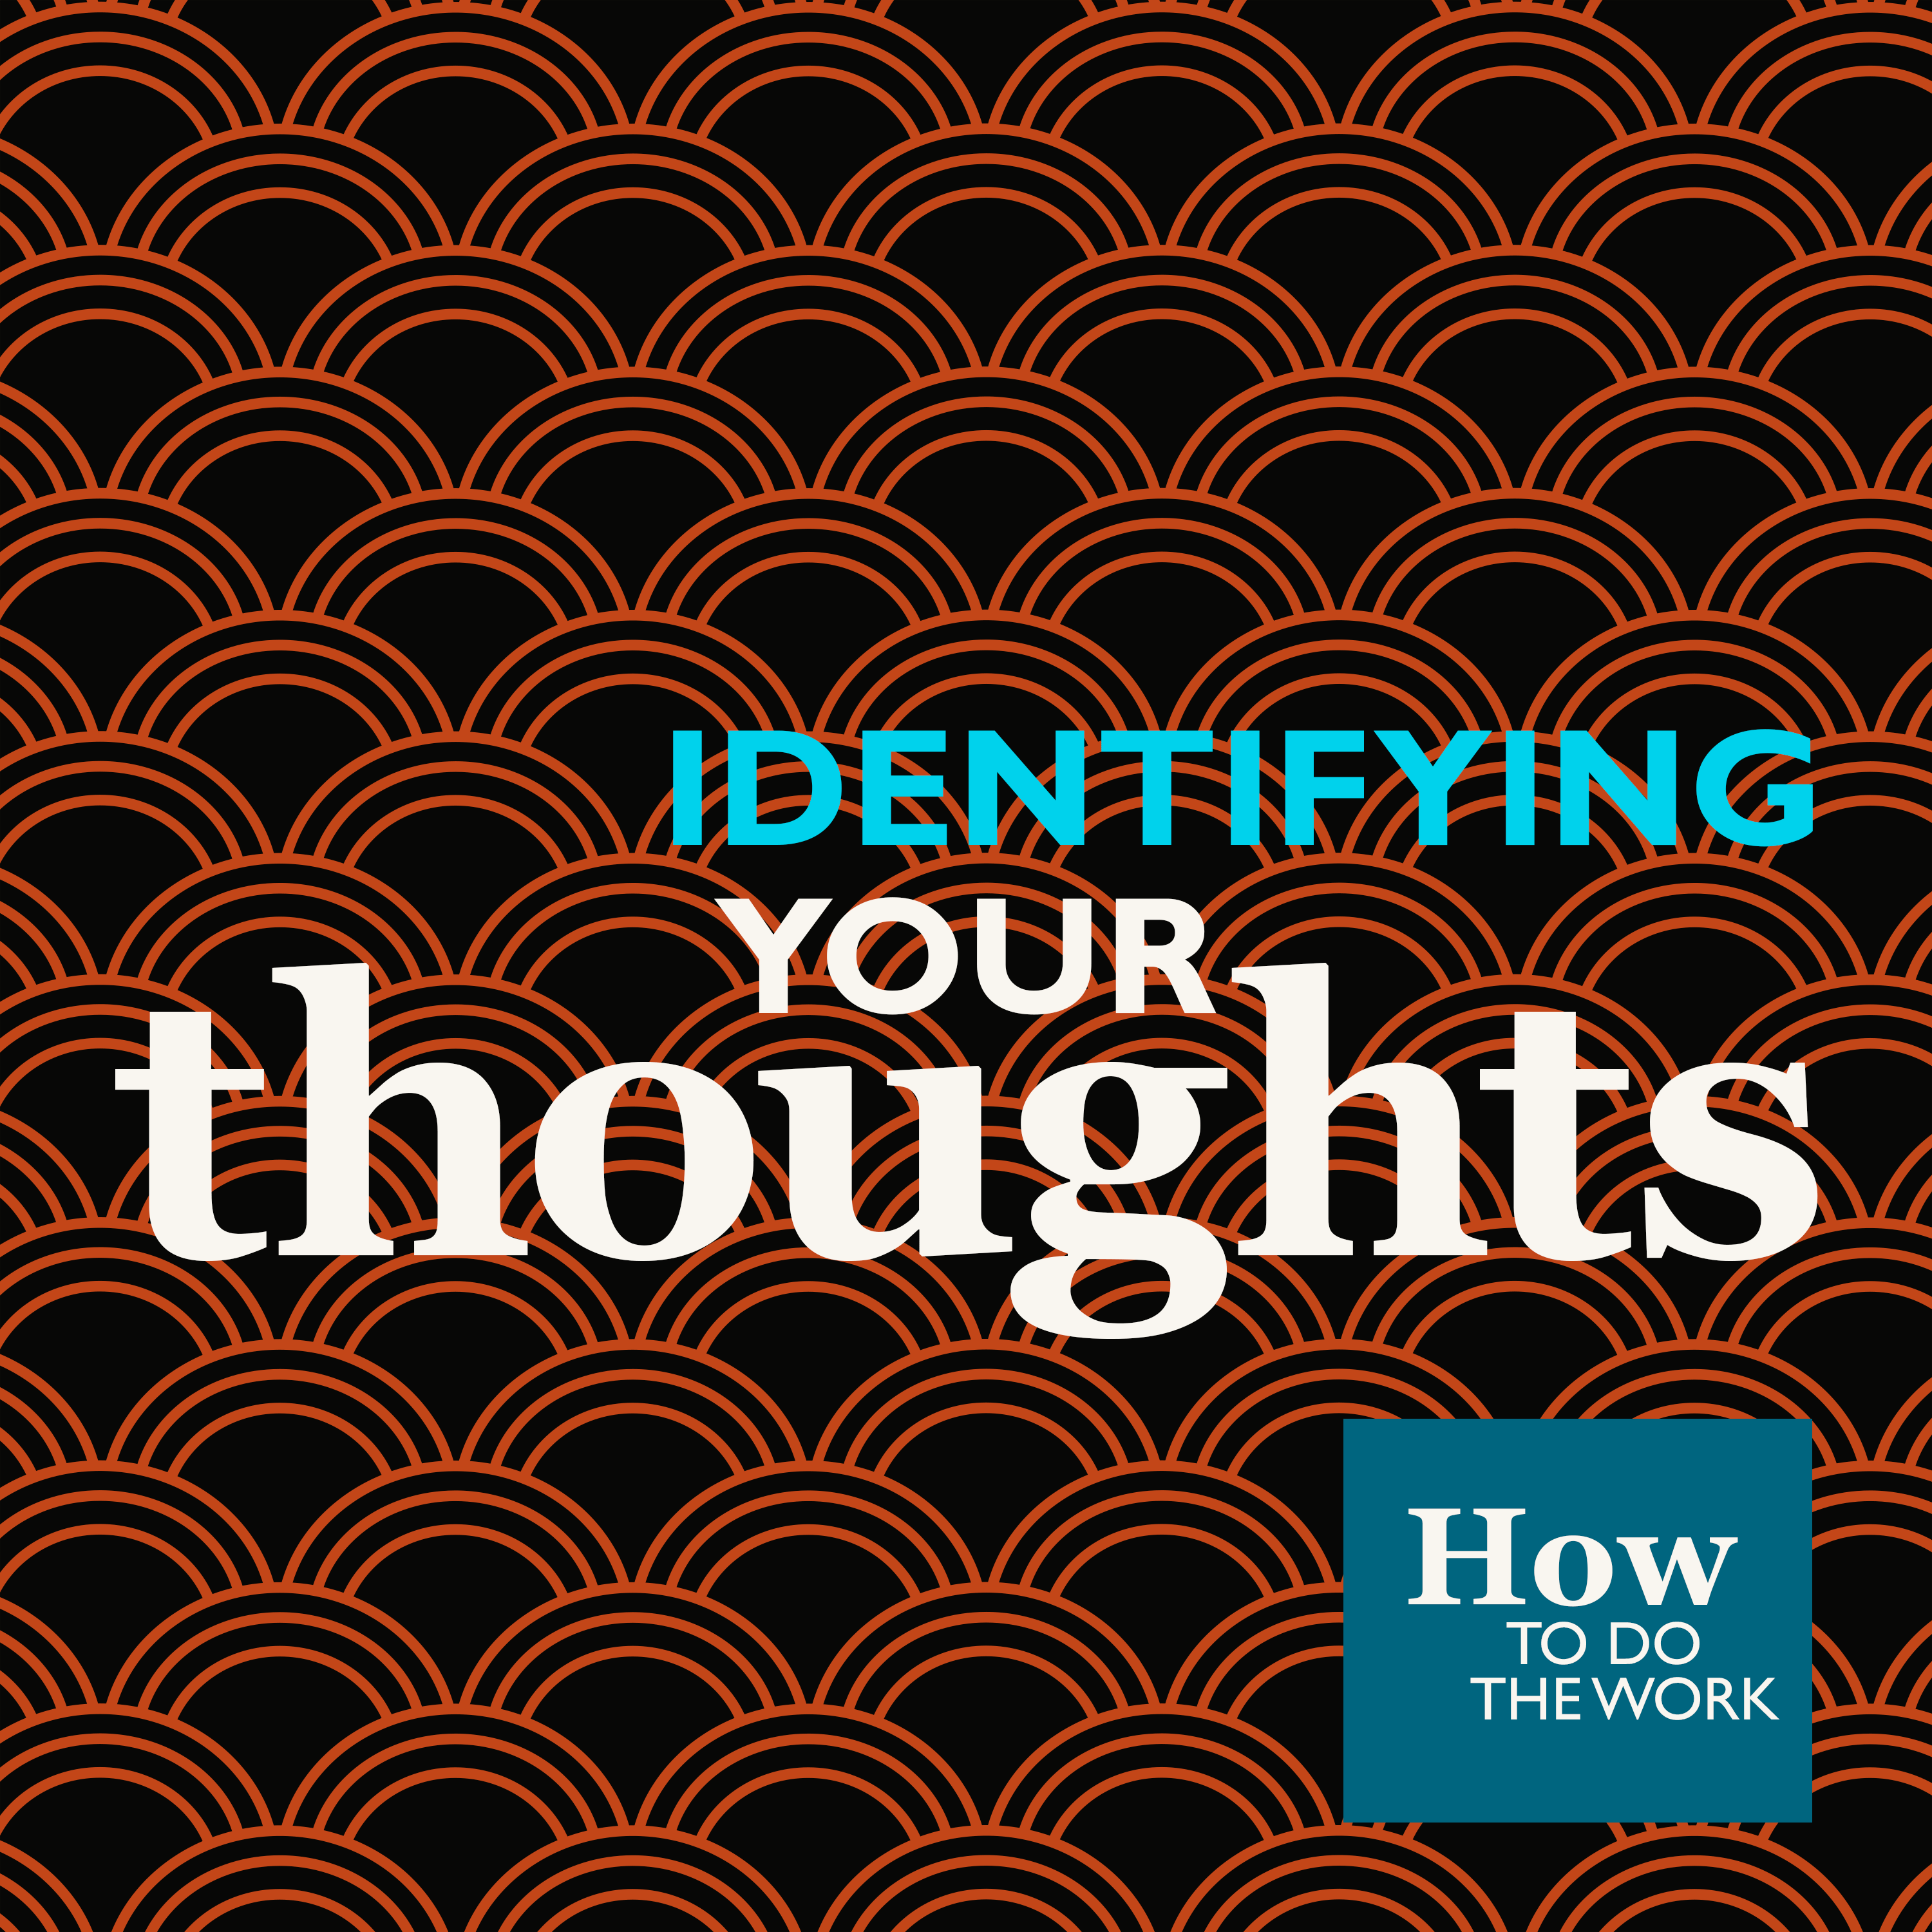 5. How To Do The Work (1): Identifying Your Thoughts